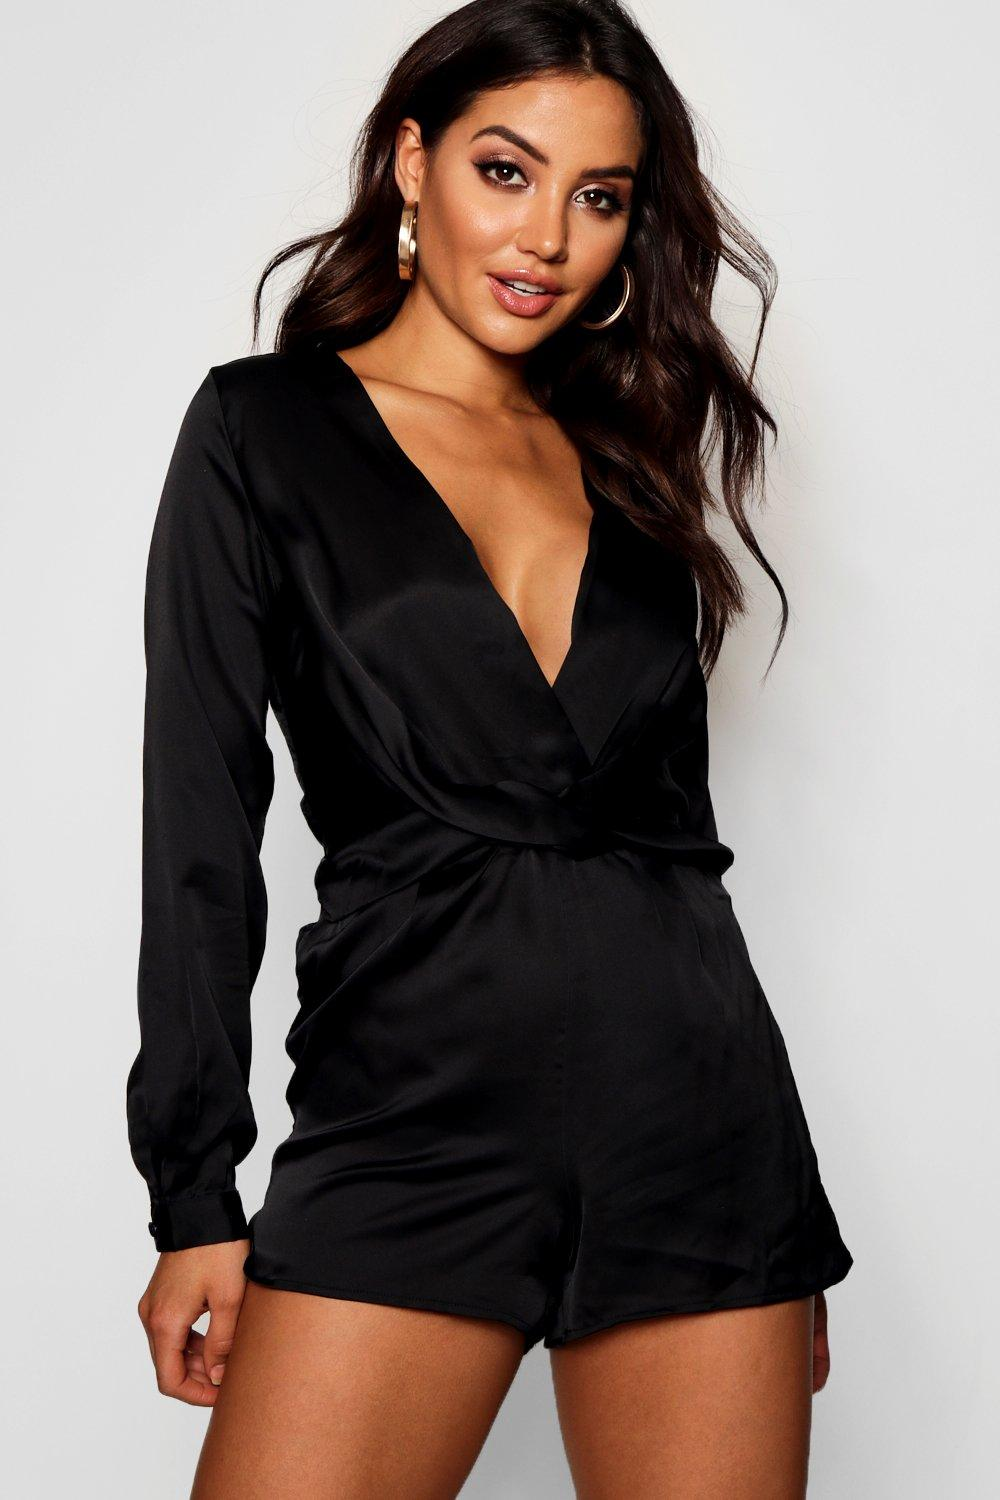 boohoo Womens Satin Twist Front Playsuit - Black - 12, Black